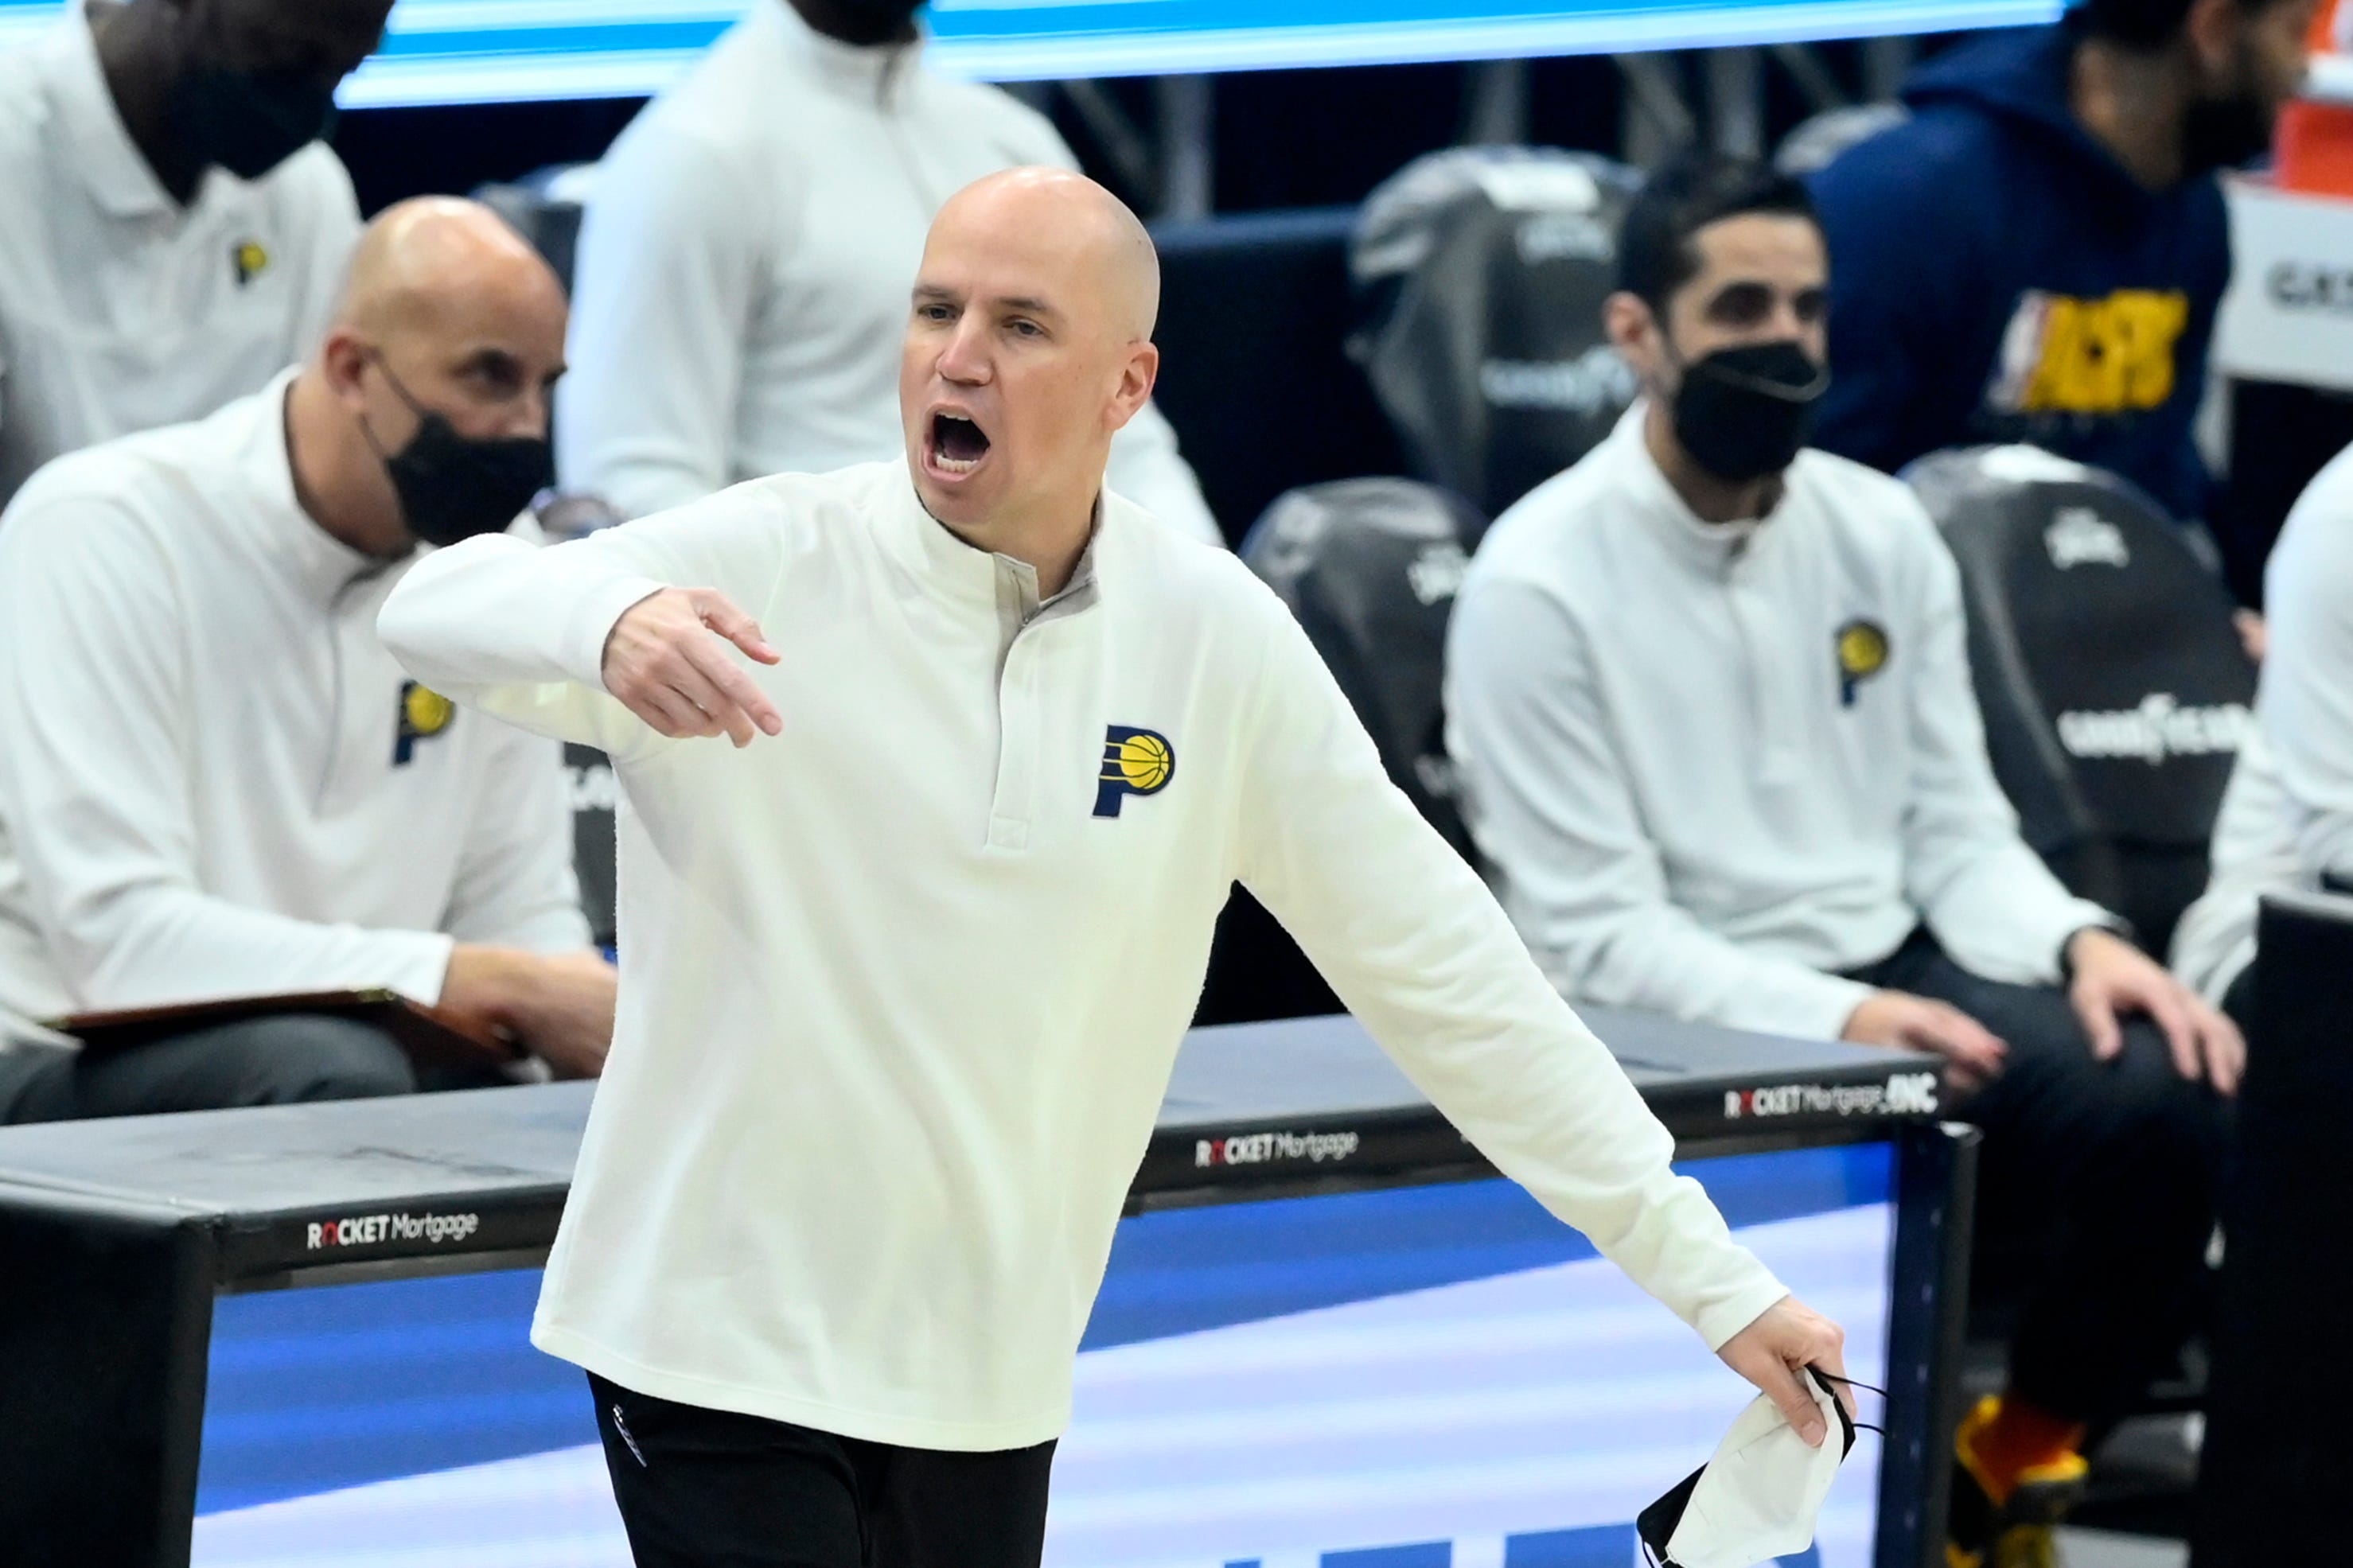 Report: Indiana Pacers quick to fire coach Nate Bjorkgren after one disastrous season